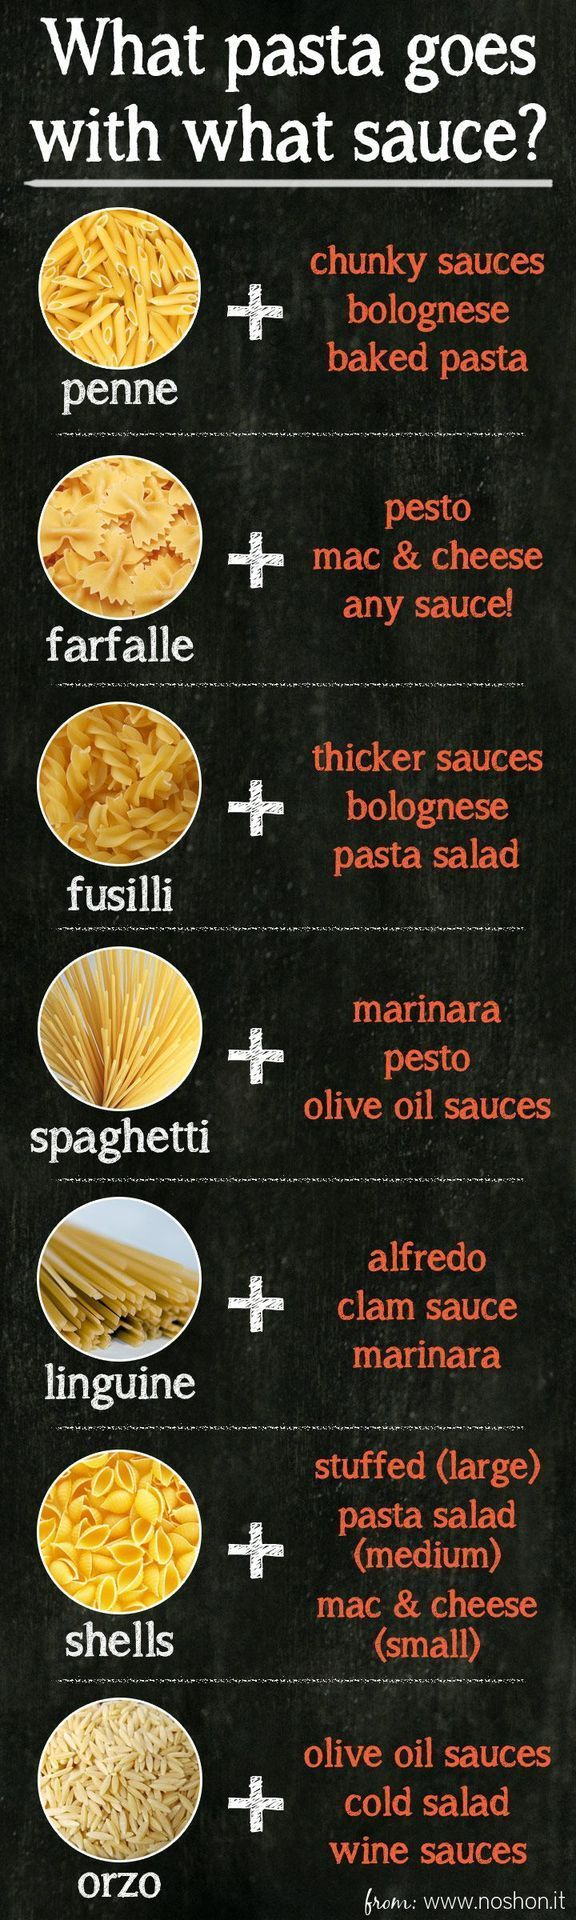 Pasta Sauce Chart What Shapes Go With What Sauces House Of Beccaria Cookingtipsandtechniques Food Food Drink Cooking